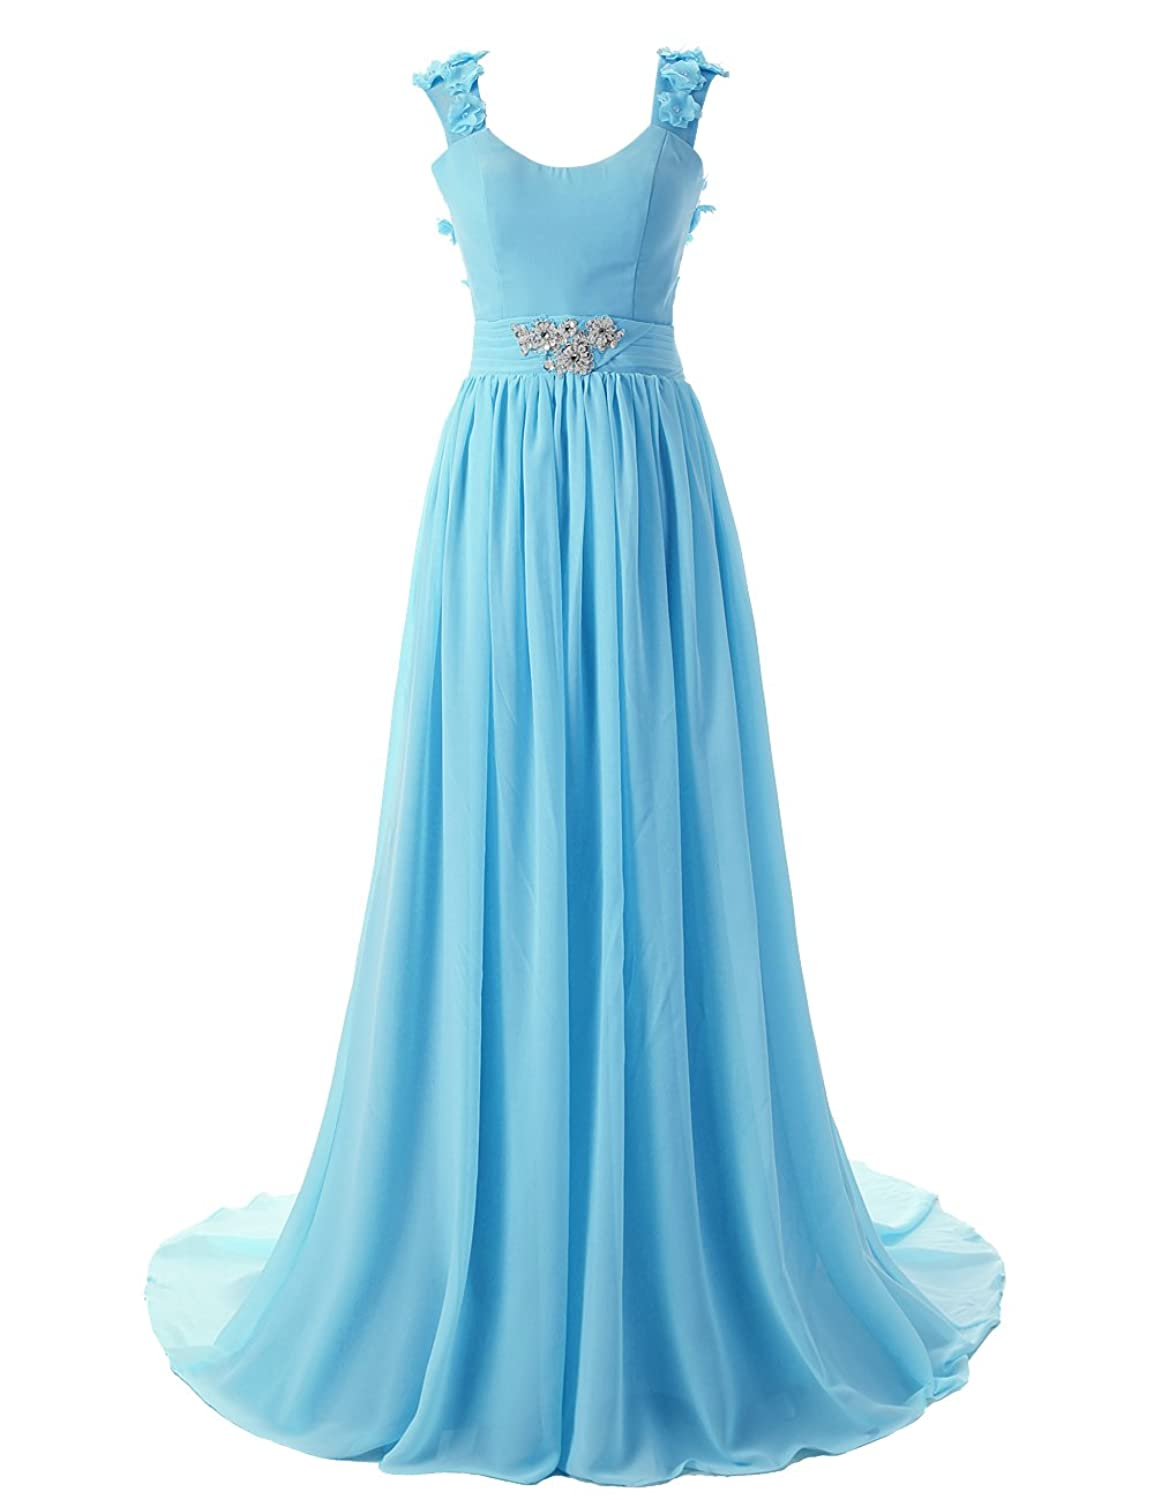 Dressystar Bodenlanges elegantes Ballkleid fashion Brautjungkleid Chiffon Blau in Gr??e 50W